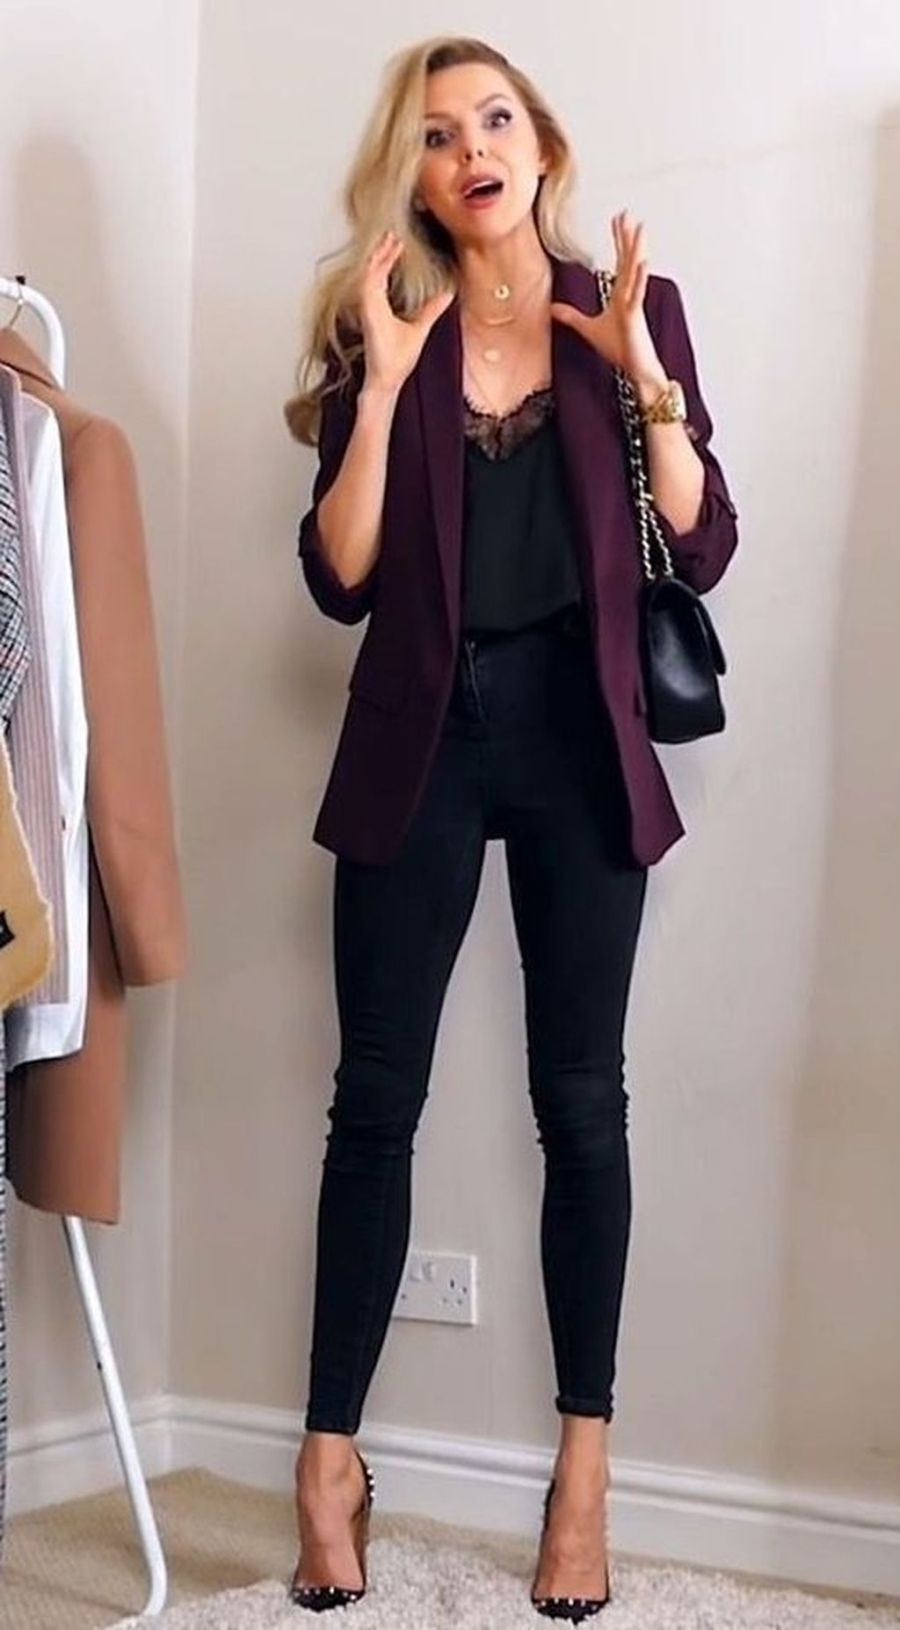 38 Stylish Work Office Outfits Ideas For Women - DRESSCODEE #officeoutfit